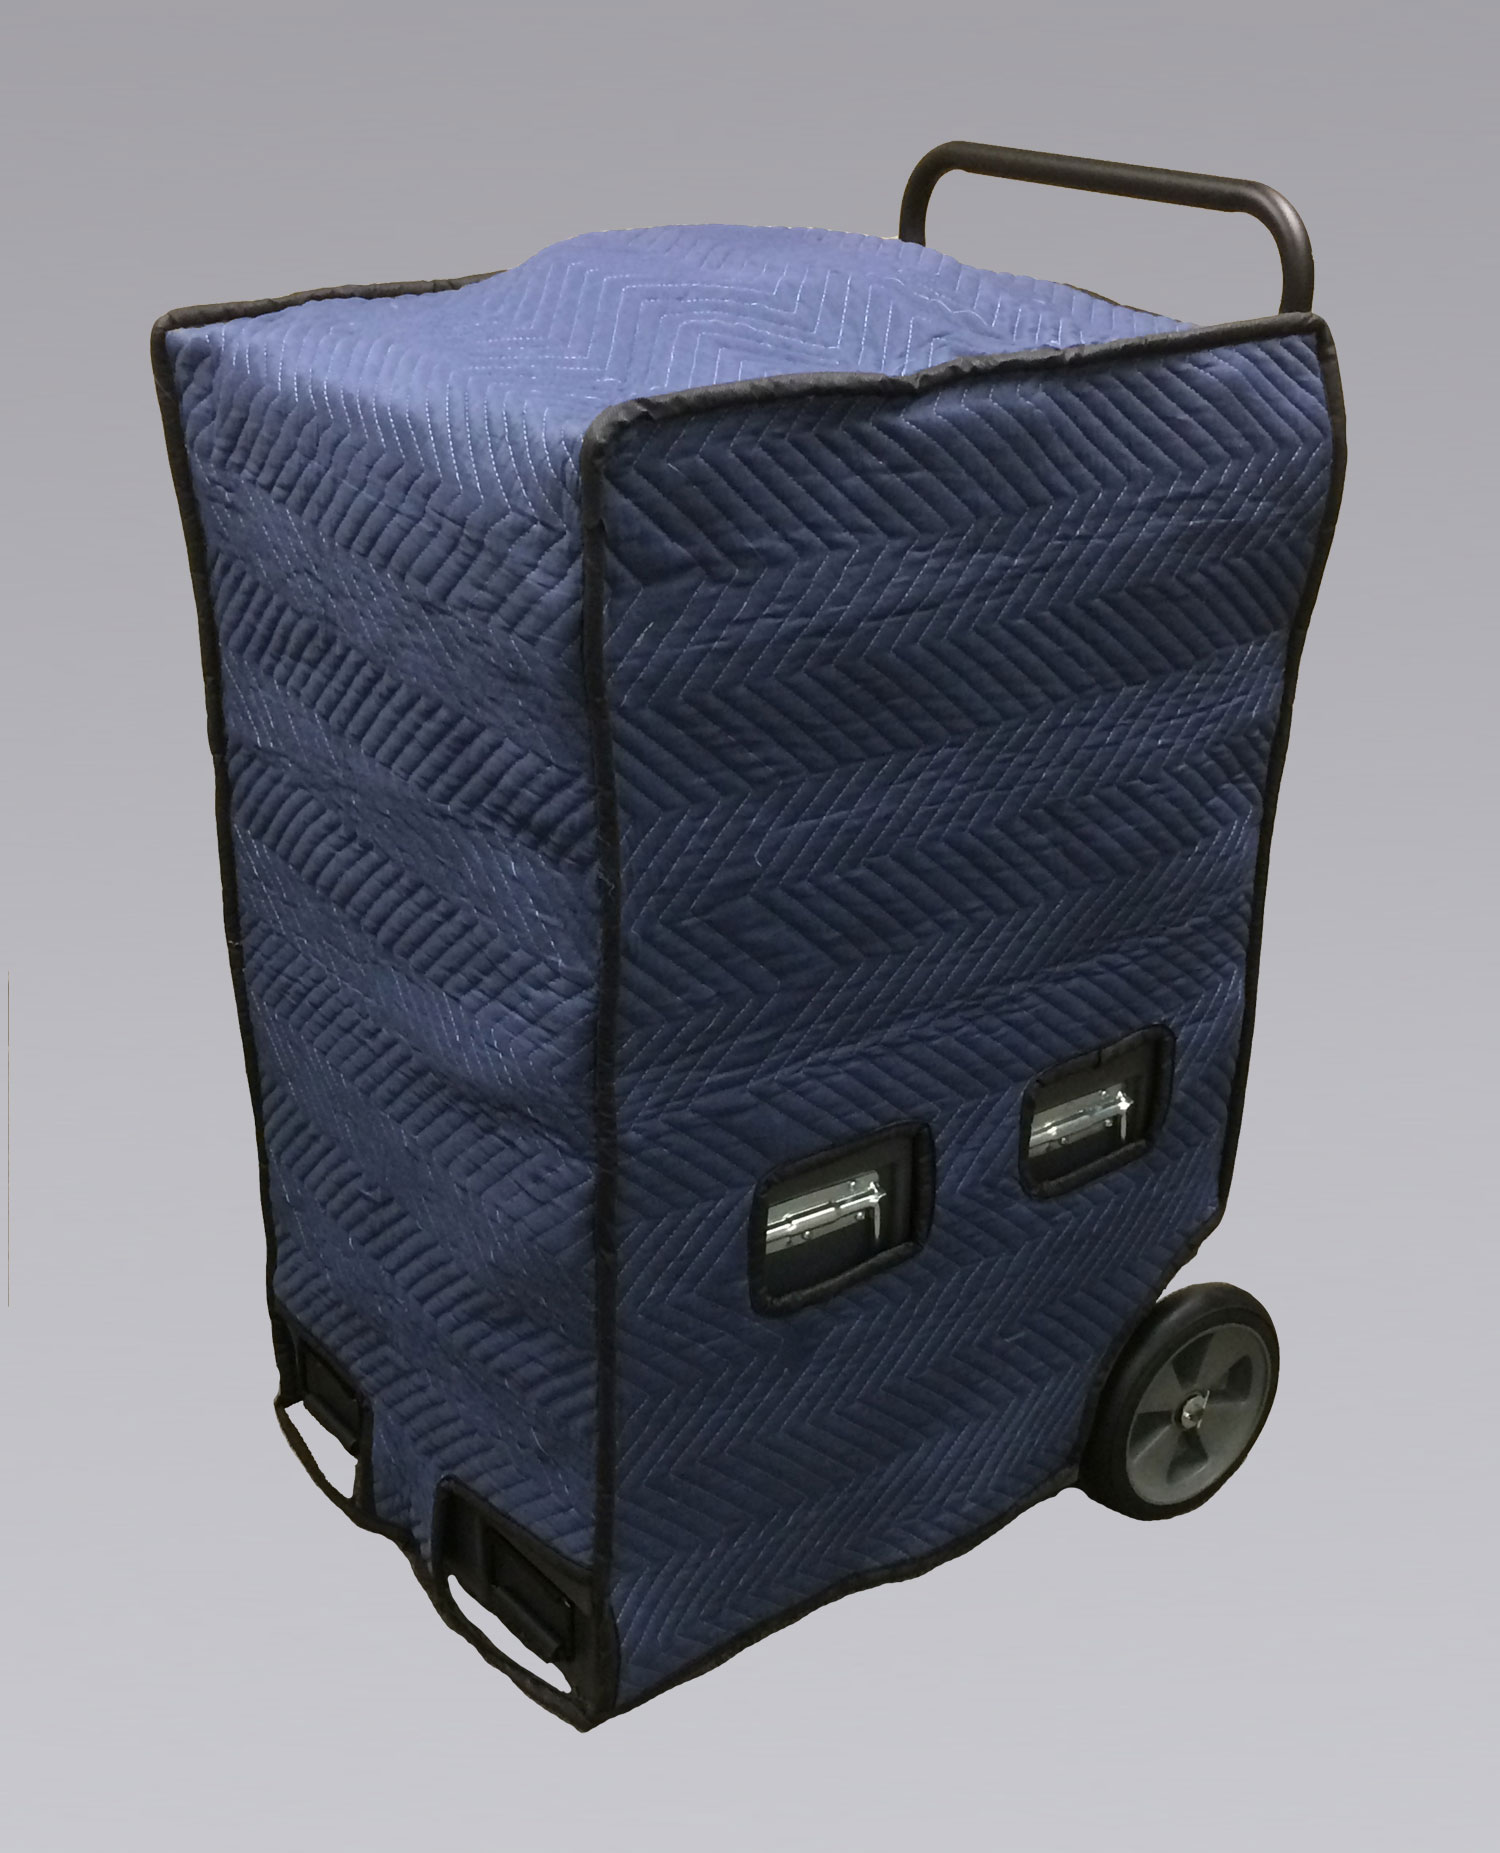 862392 - 862538 - Transport Covers - NIKRO Industries, Inc.